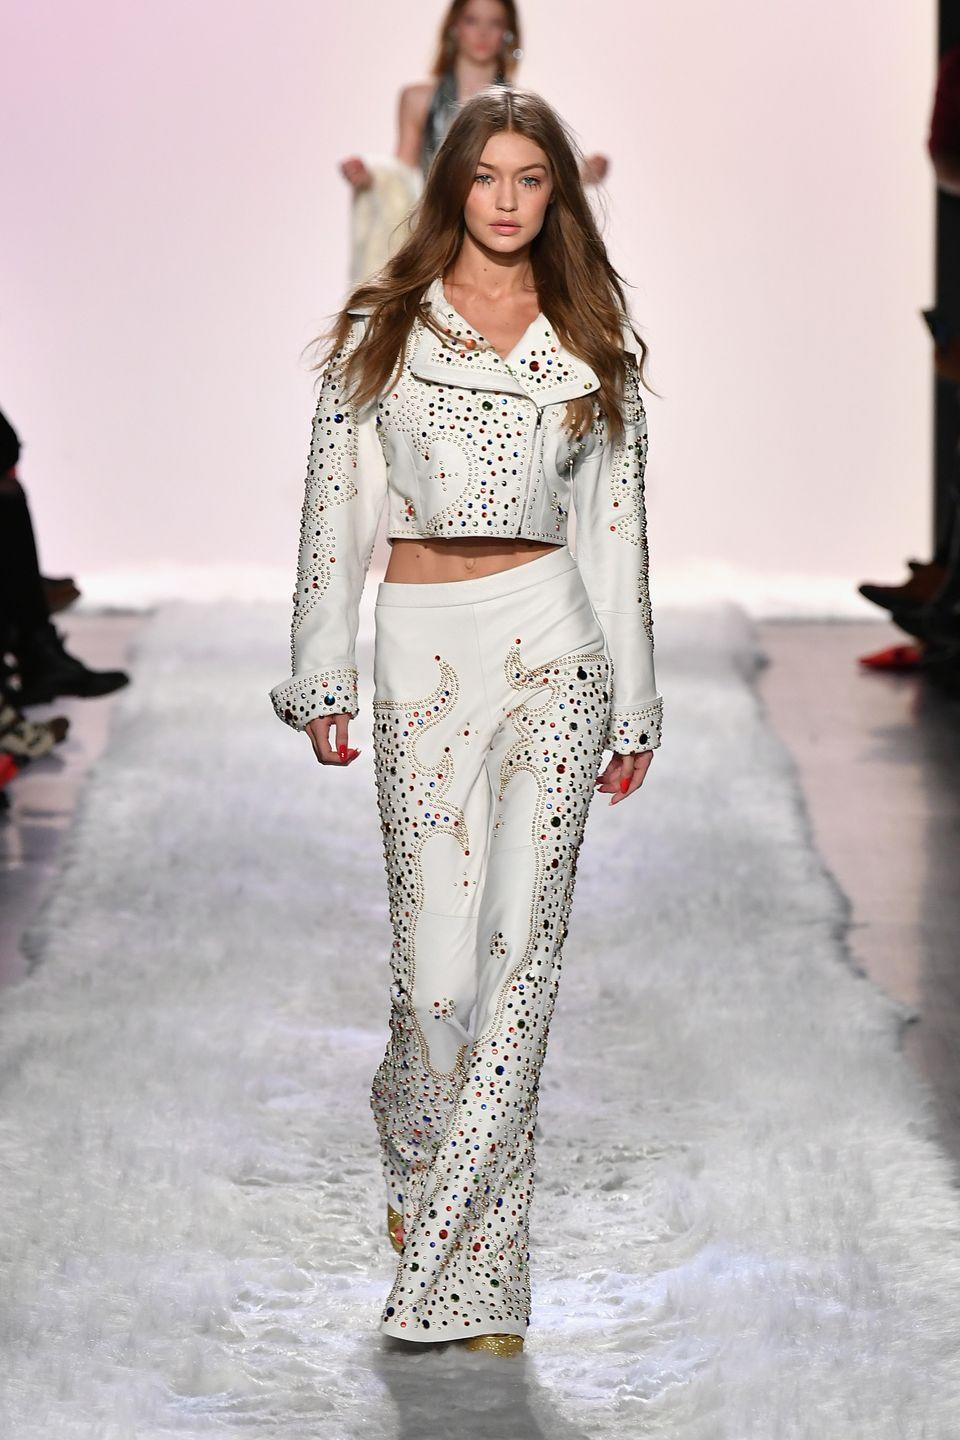 <p>Gigi walked the runway at the Jeremy Scott fashion show in New York City, wearing an Elvis-inspired white leather jacket and trousers.<br><br><br></p>